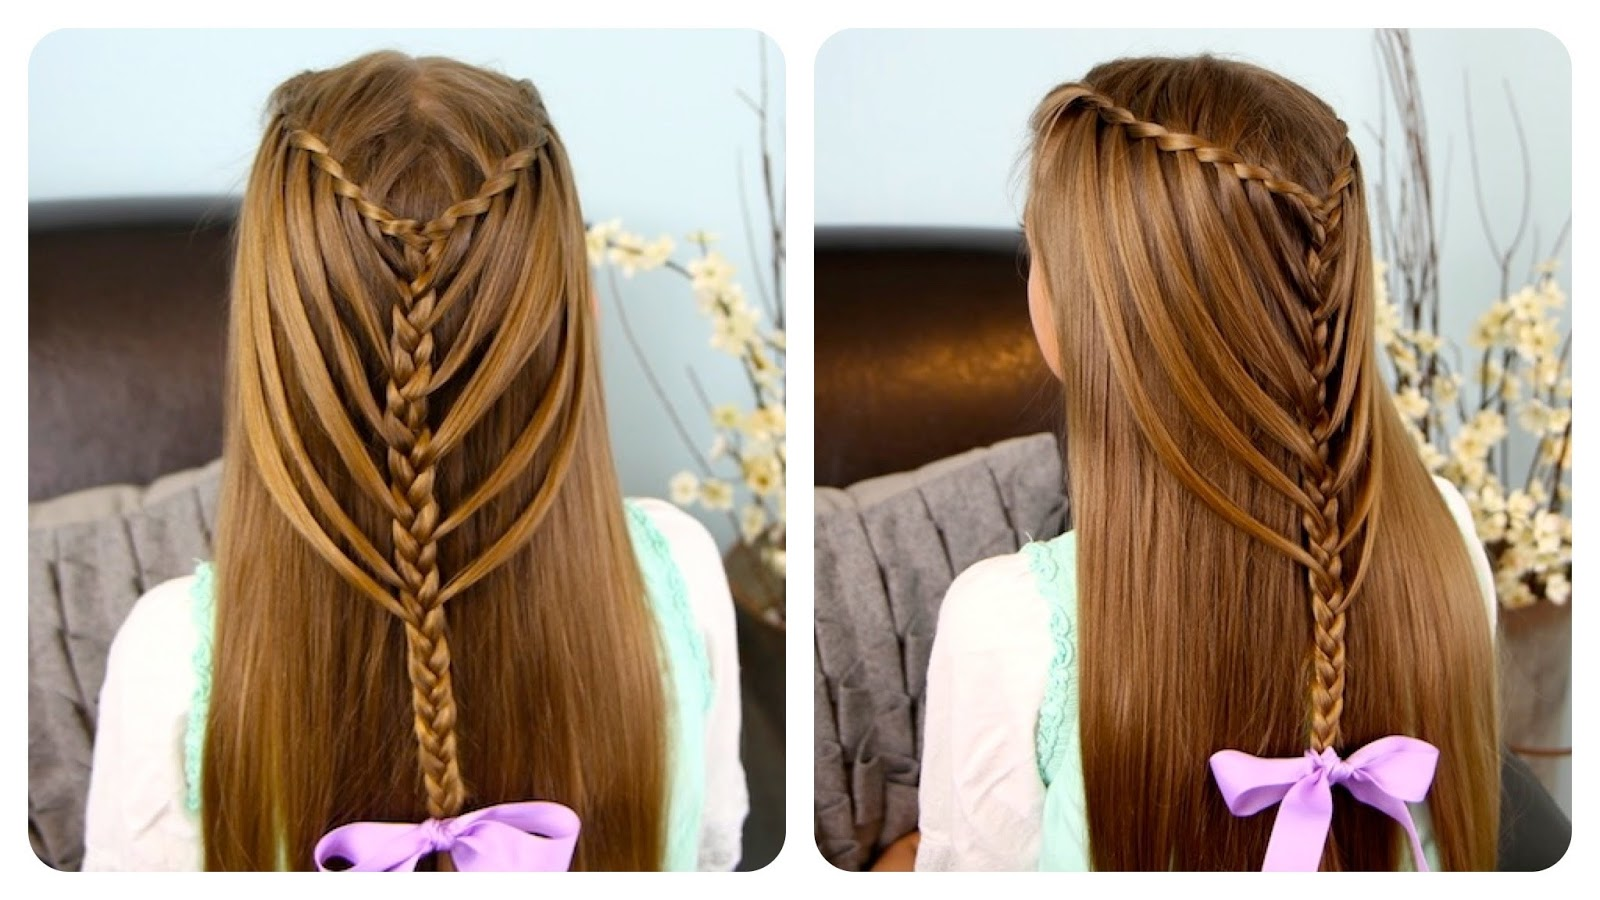 12 Cute Girls Hairstyles Trend Image And Picture TOP Hairstyles